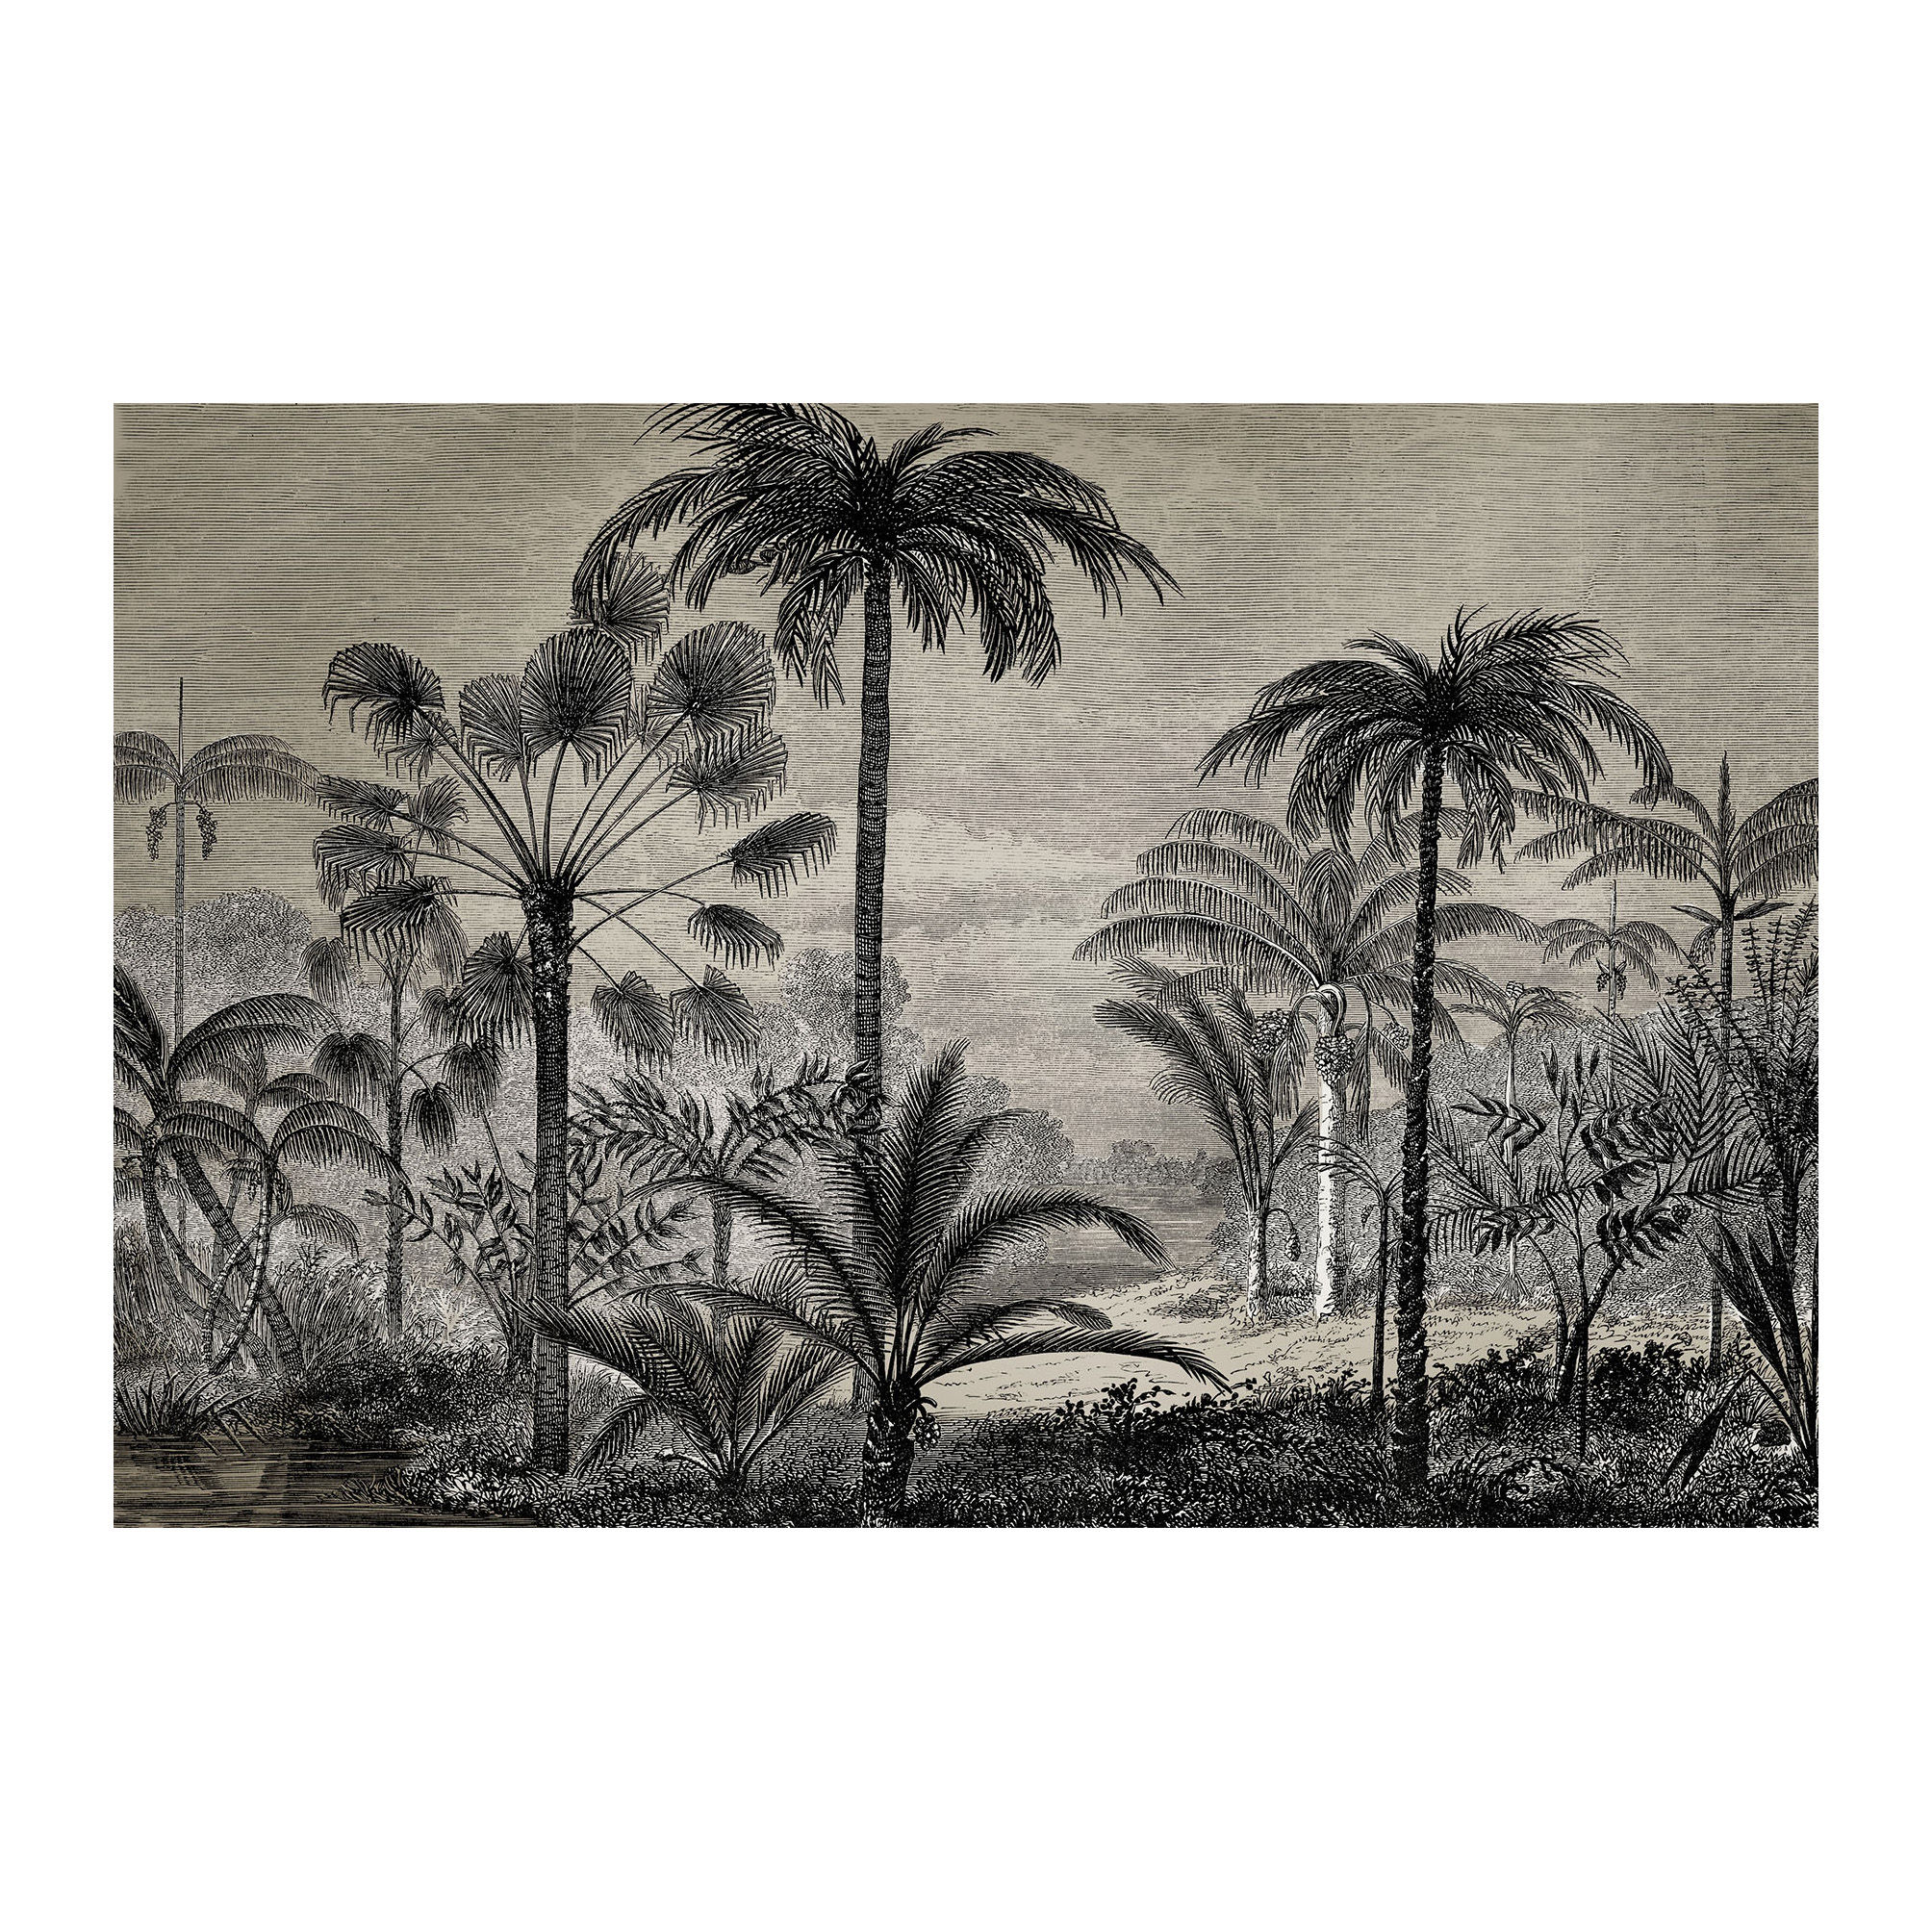 Decoration - Rugs - Tresors Rug - / 198 x 139 cm - Vinyl by Beaumont - Palmiers No. 1 / Black & white - Vinal